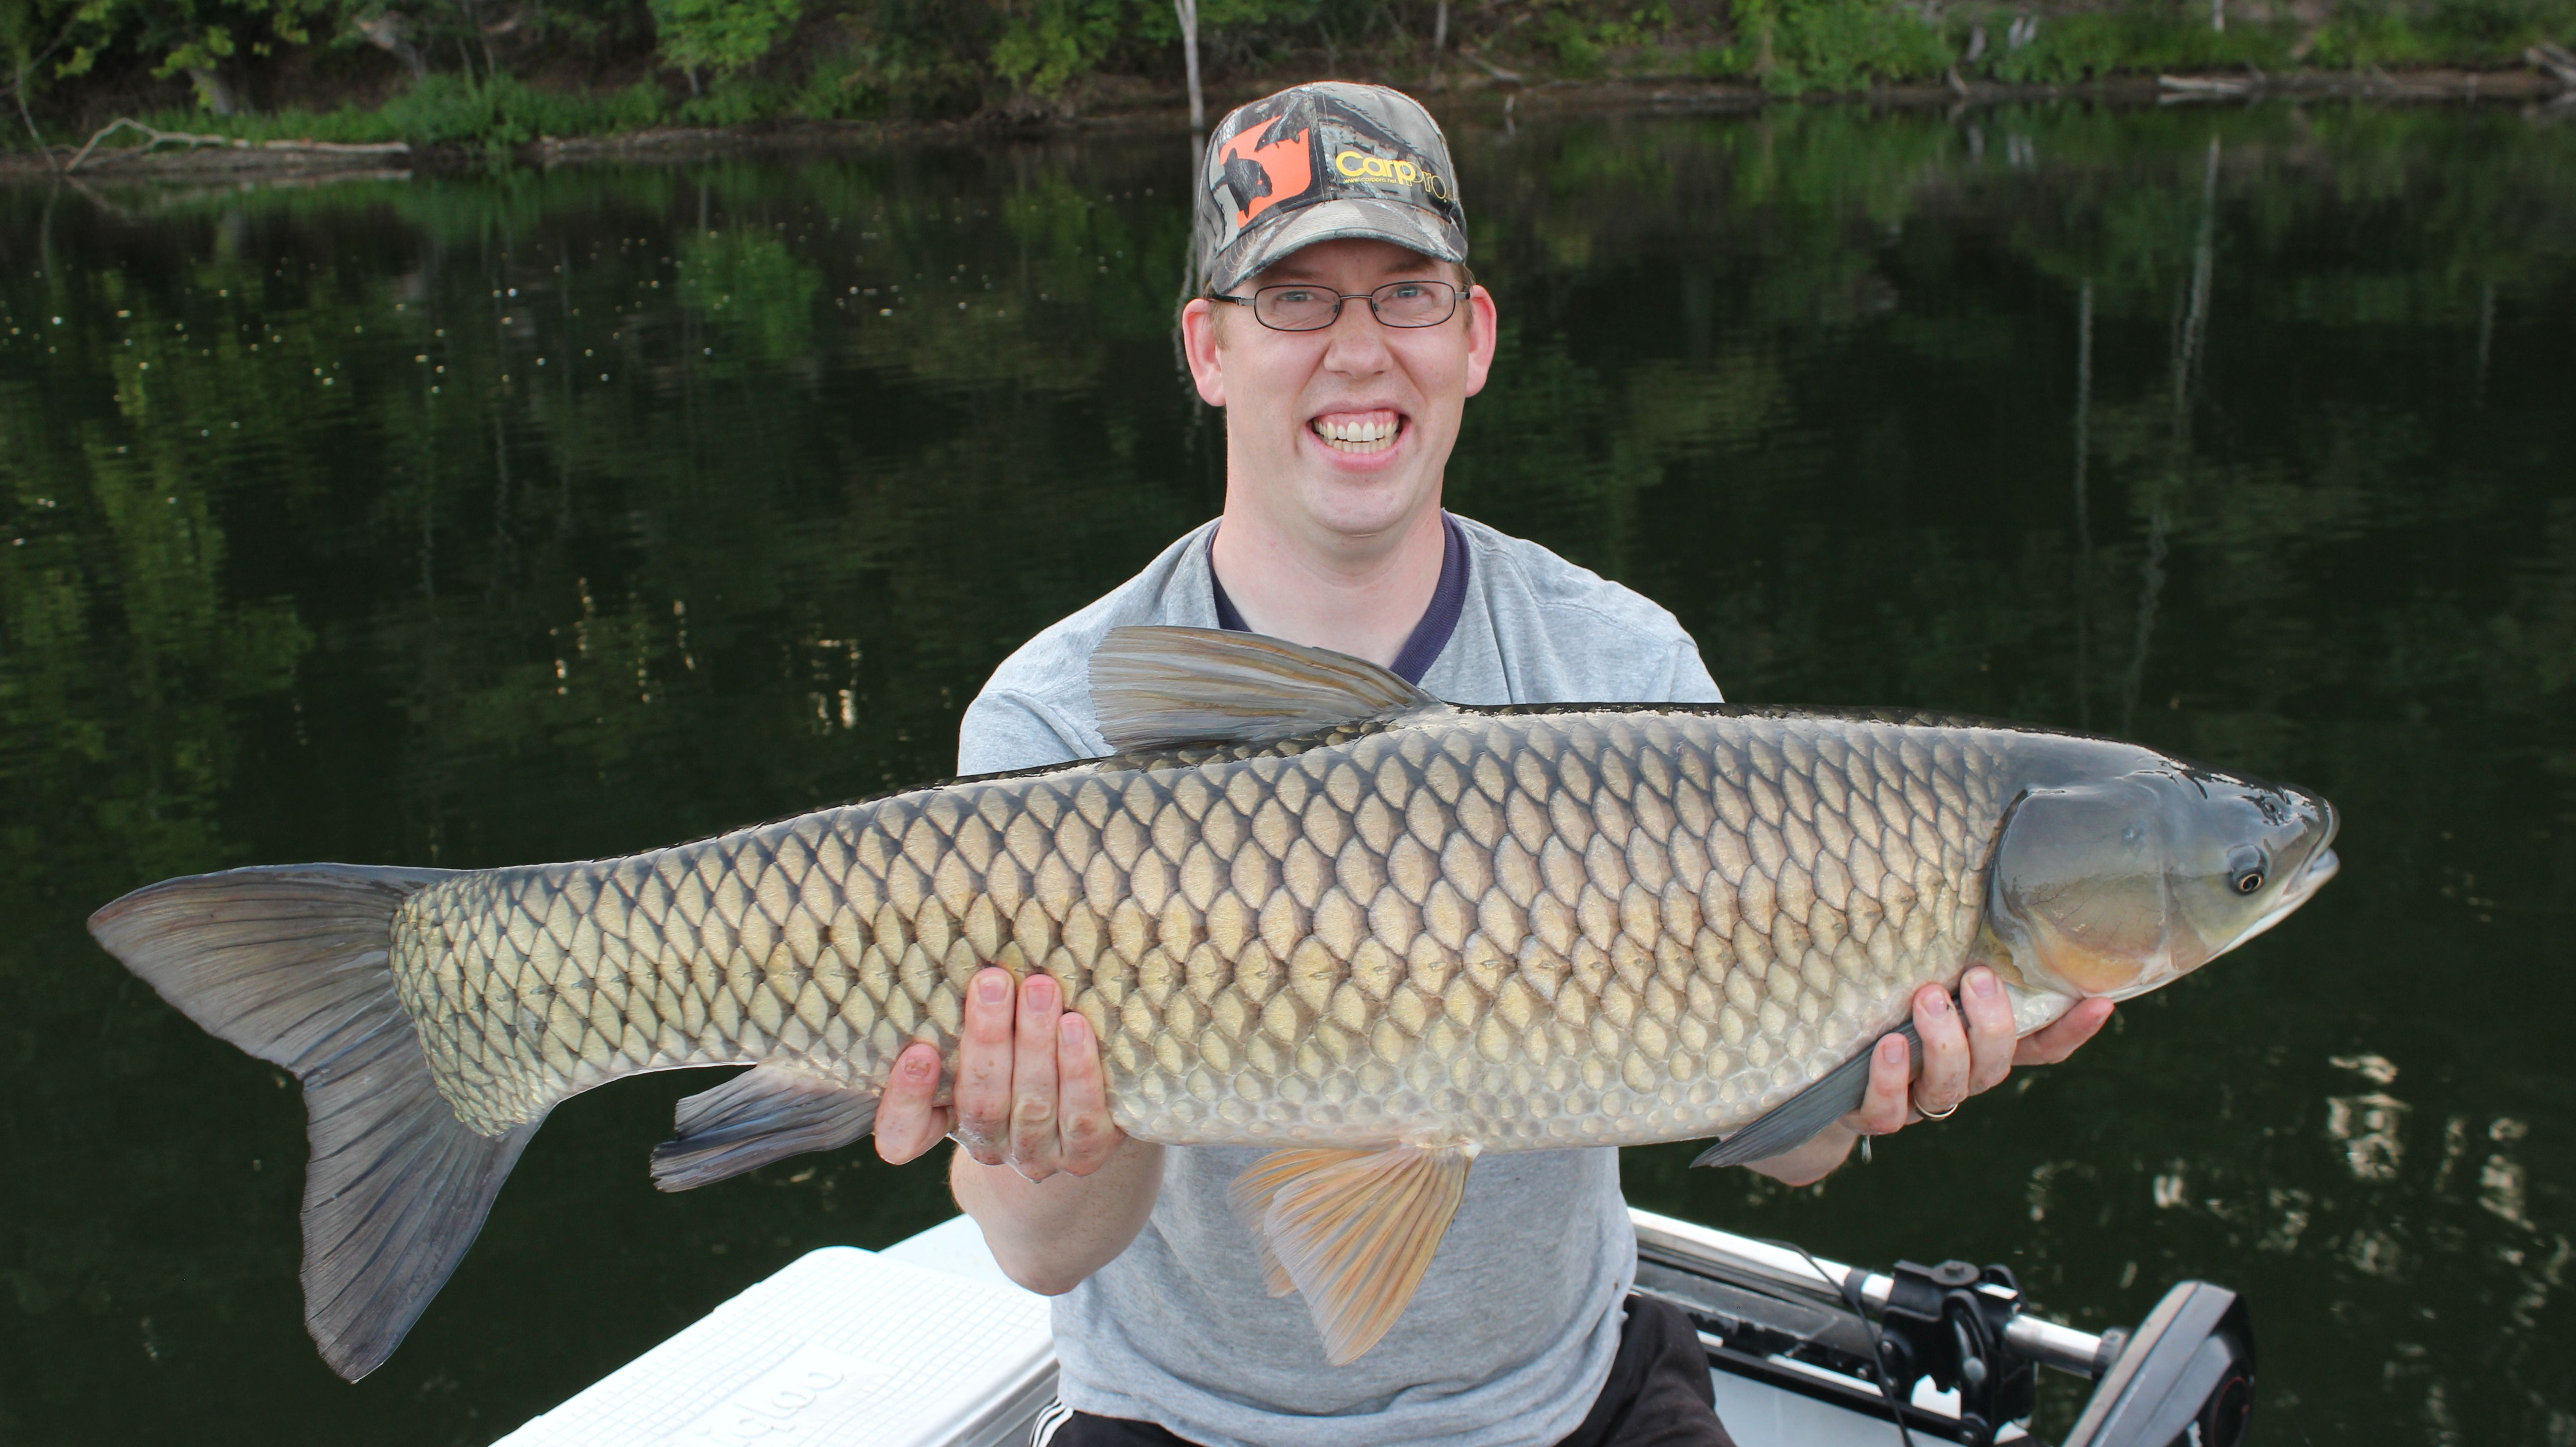 4513ec88c2 A nice 29.5 lb grass carp caught on the surface using floating fish  pellets. For